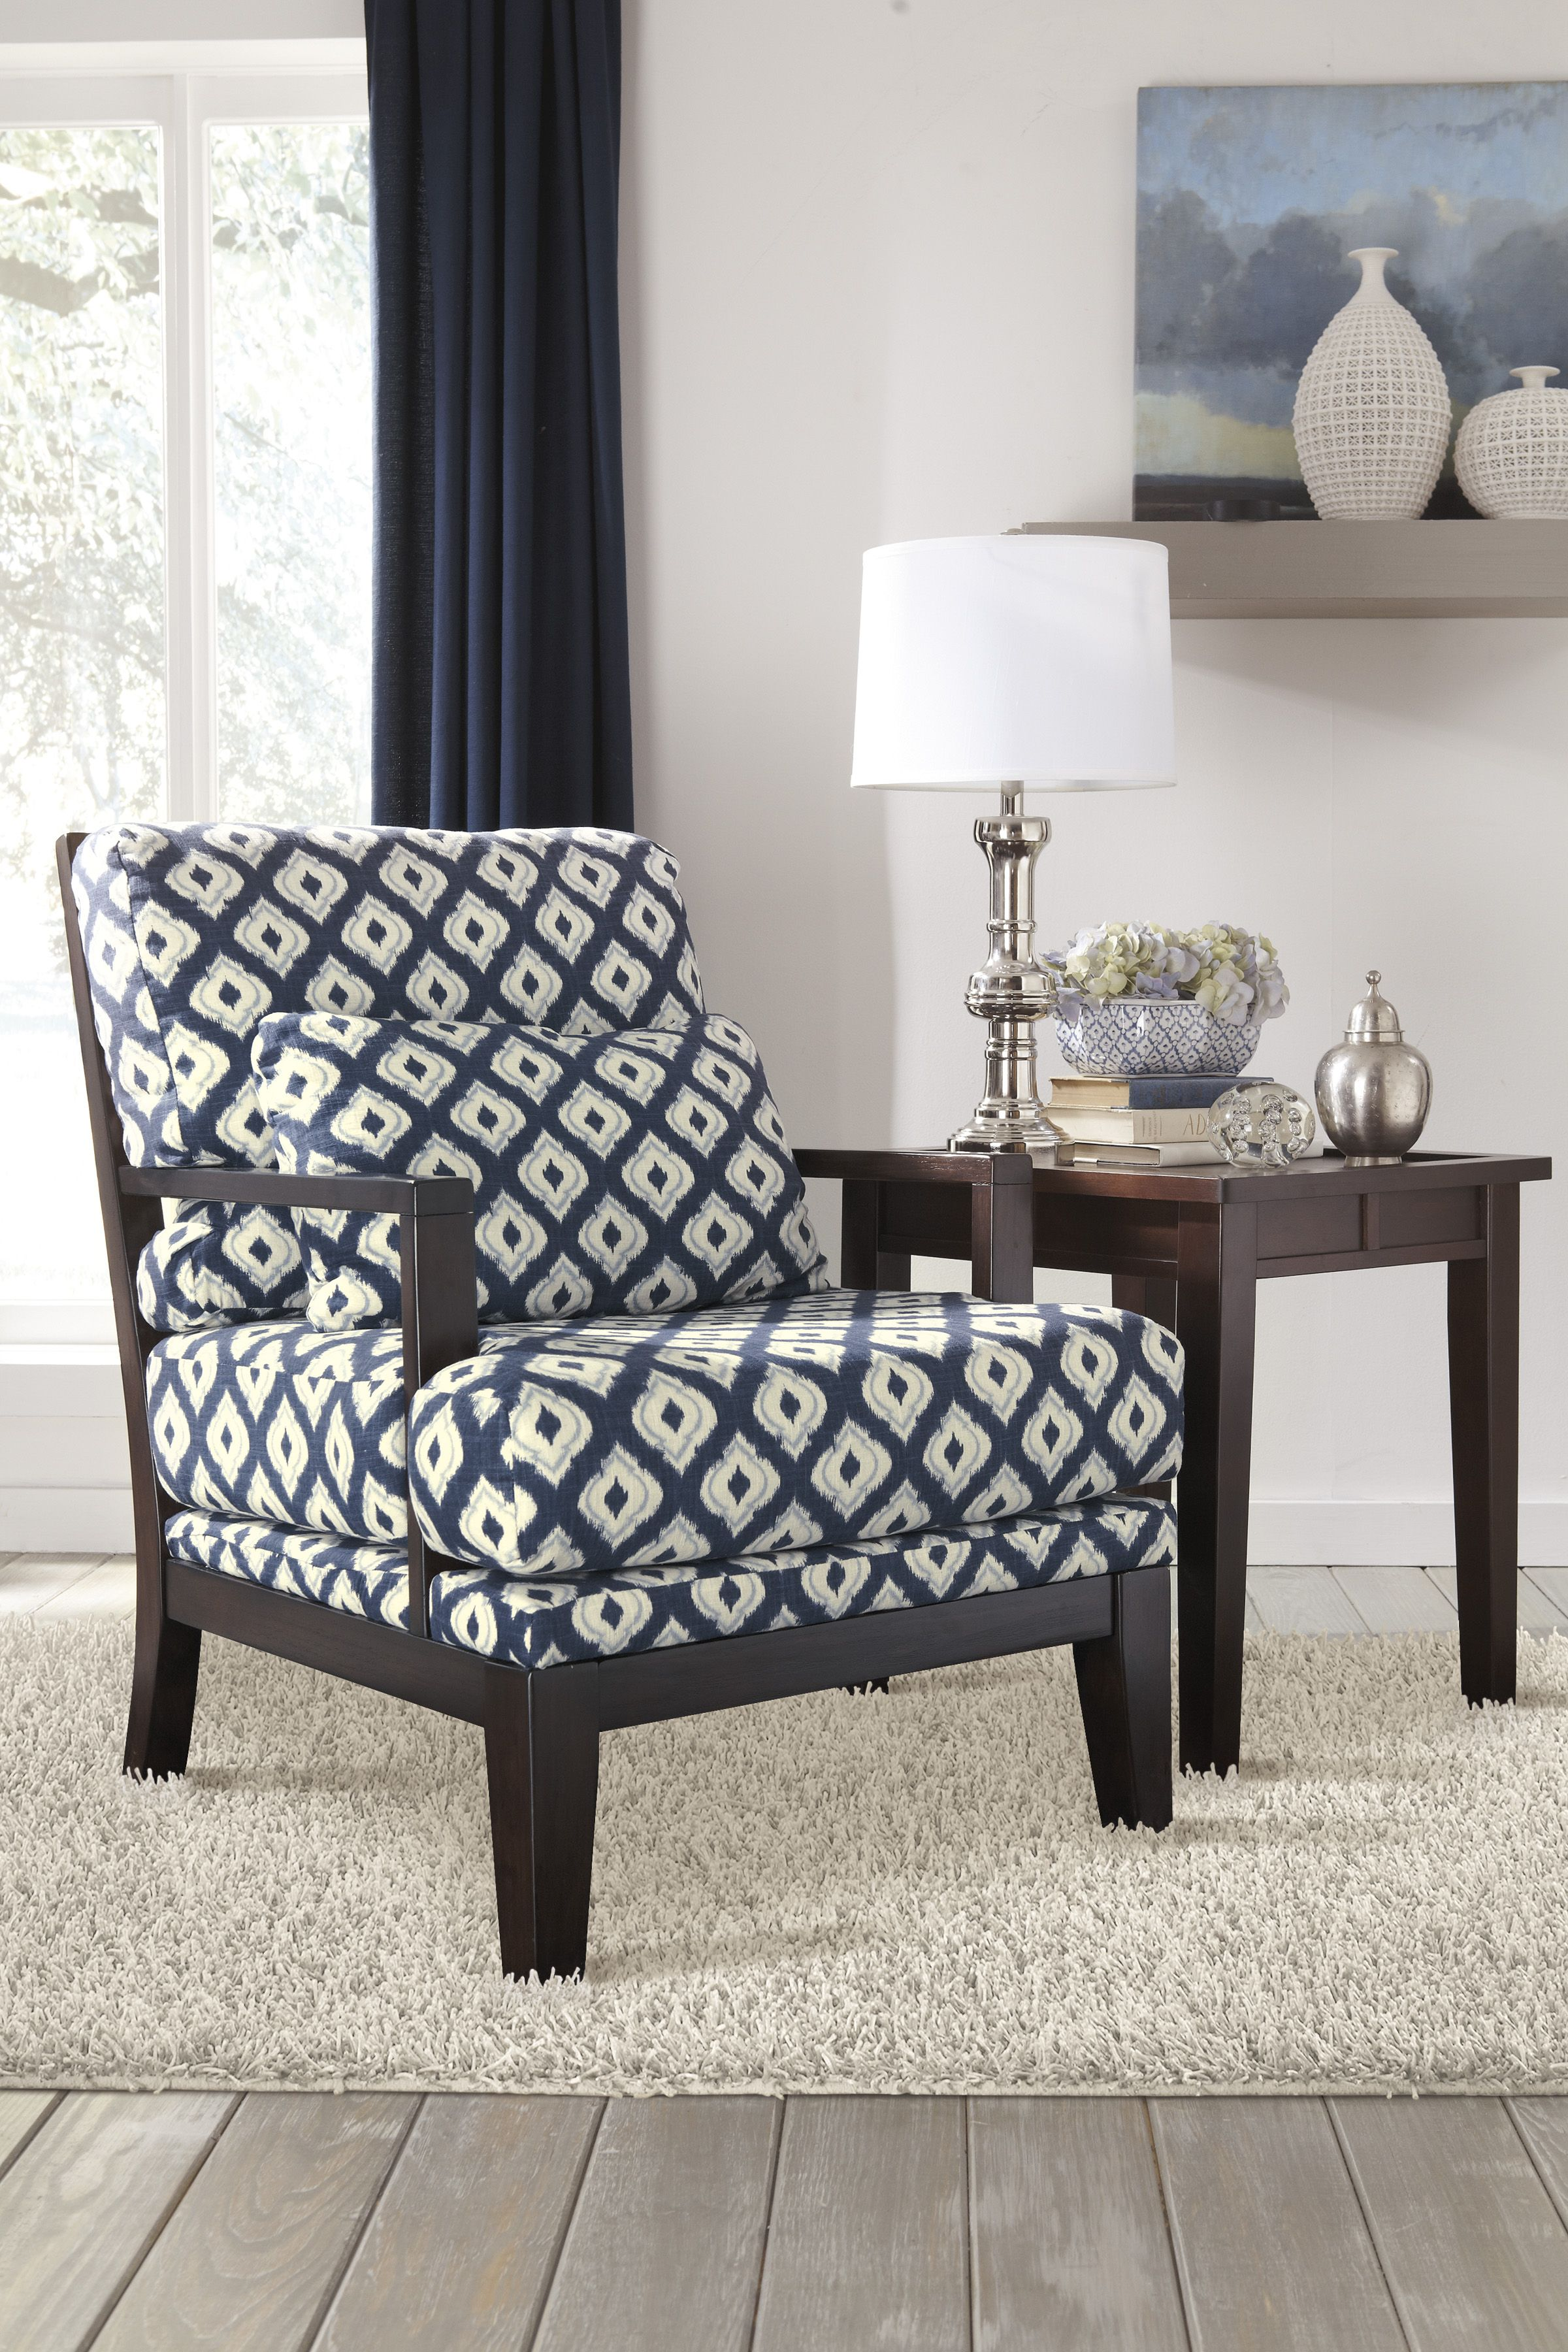 in by Ashley Furniture in Wichita KS Showood Accent Chair